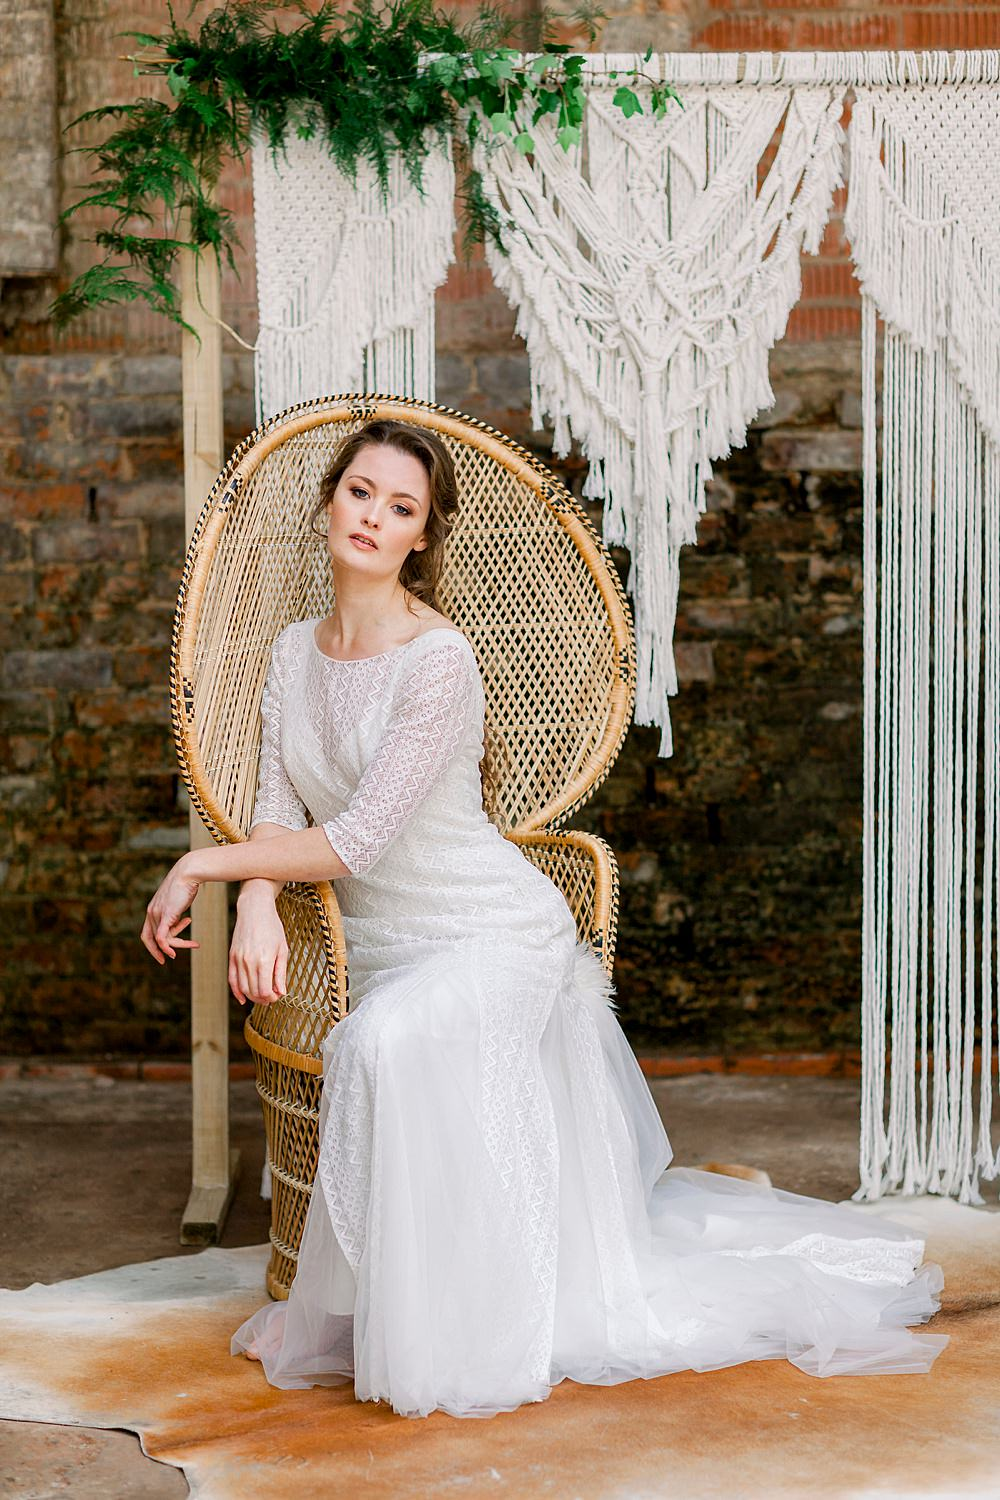 Dress Gown Bride Bridal Stelfox Bride Lace Tulle Low Back Sleeves Train Peacock Chair Natural Boho Industrial Wedding Ideas Jo Bradbury Photography